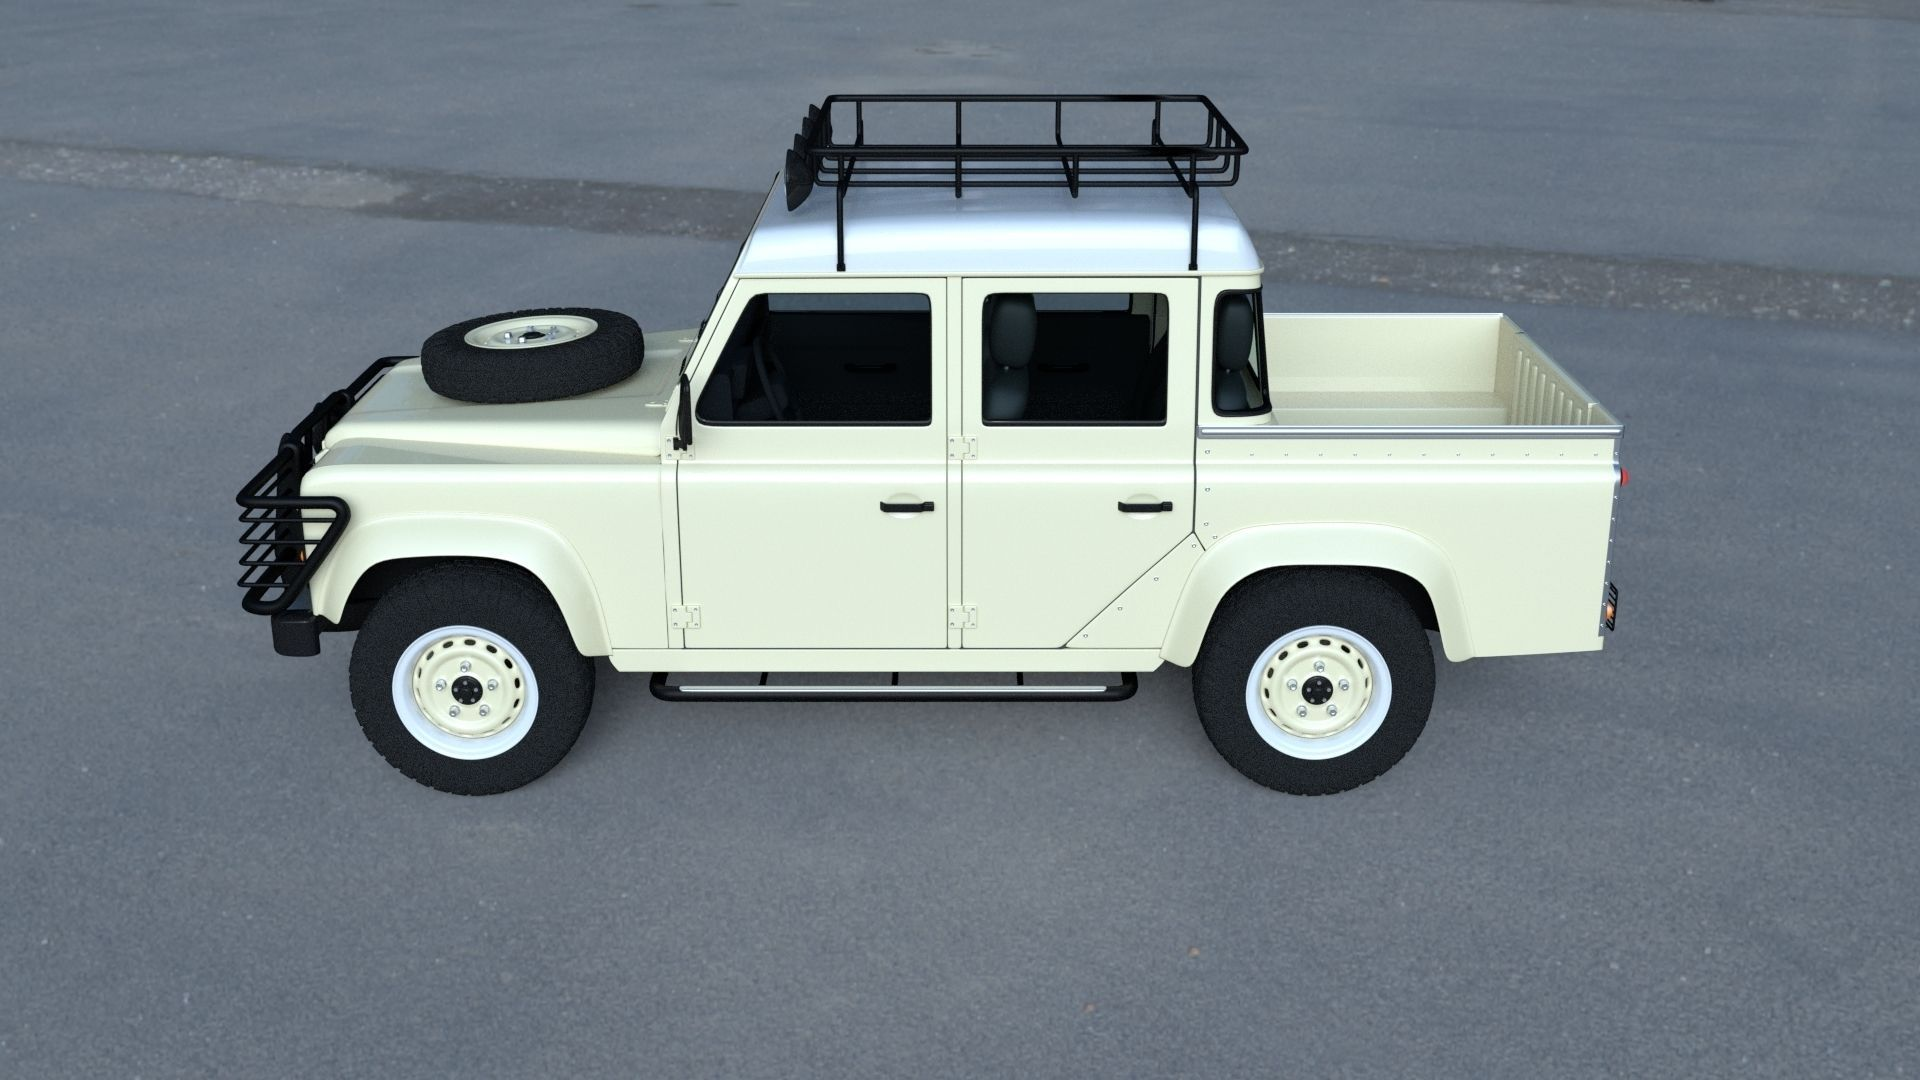 land rover defender 110 double cab pick up w interior hdri 3d model obj fbx stl blend dae mtl. Black Bedroom Furniture Sets. Home Design Ideas